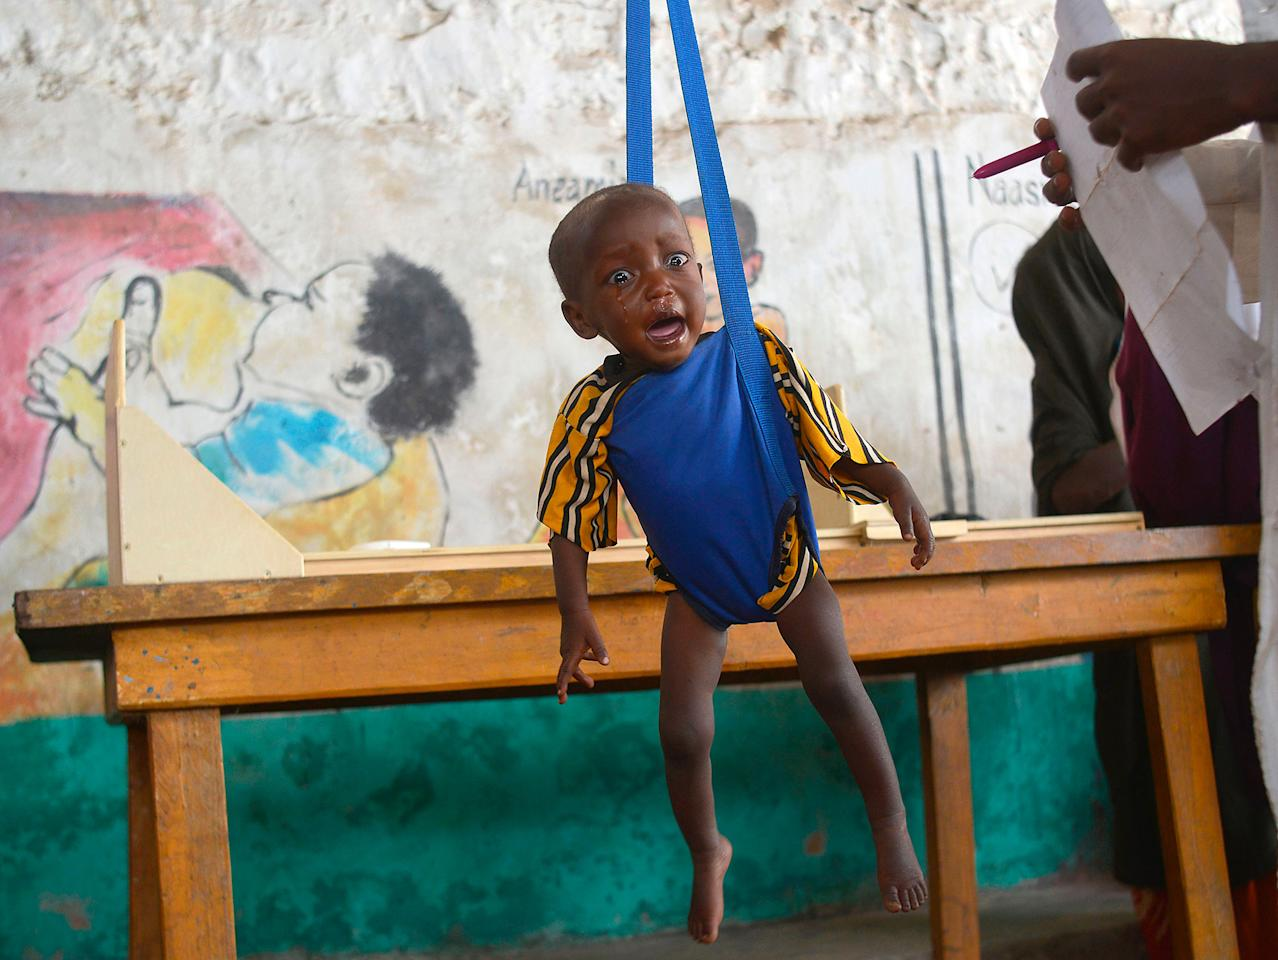 <p>MAR. 15, 2017 – A malnourished child is processed by an aid worker for a UNICEF- funded health programme catering to children displaced by drought, at a facility in Baidoa town, the capital of Bay region of south-western Somalia where the spread of cholera has claimed tens of lives of IDP's compounding the impact of drought.<br /> The United Nations is warning of an unprecedented global crisis with famine already gripping parts of South Sudan and looming over Nigeria, Yemen and Somalia, threatening the lives of 20 million people. For Somalis, the memory of the 2011 famine which left a quarter of a million people dead is still fresh. (Photo: Tony KarumbaAFP/Getty Images) </p>